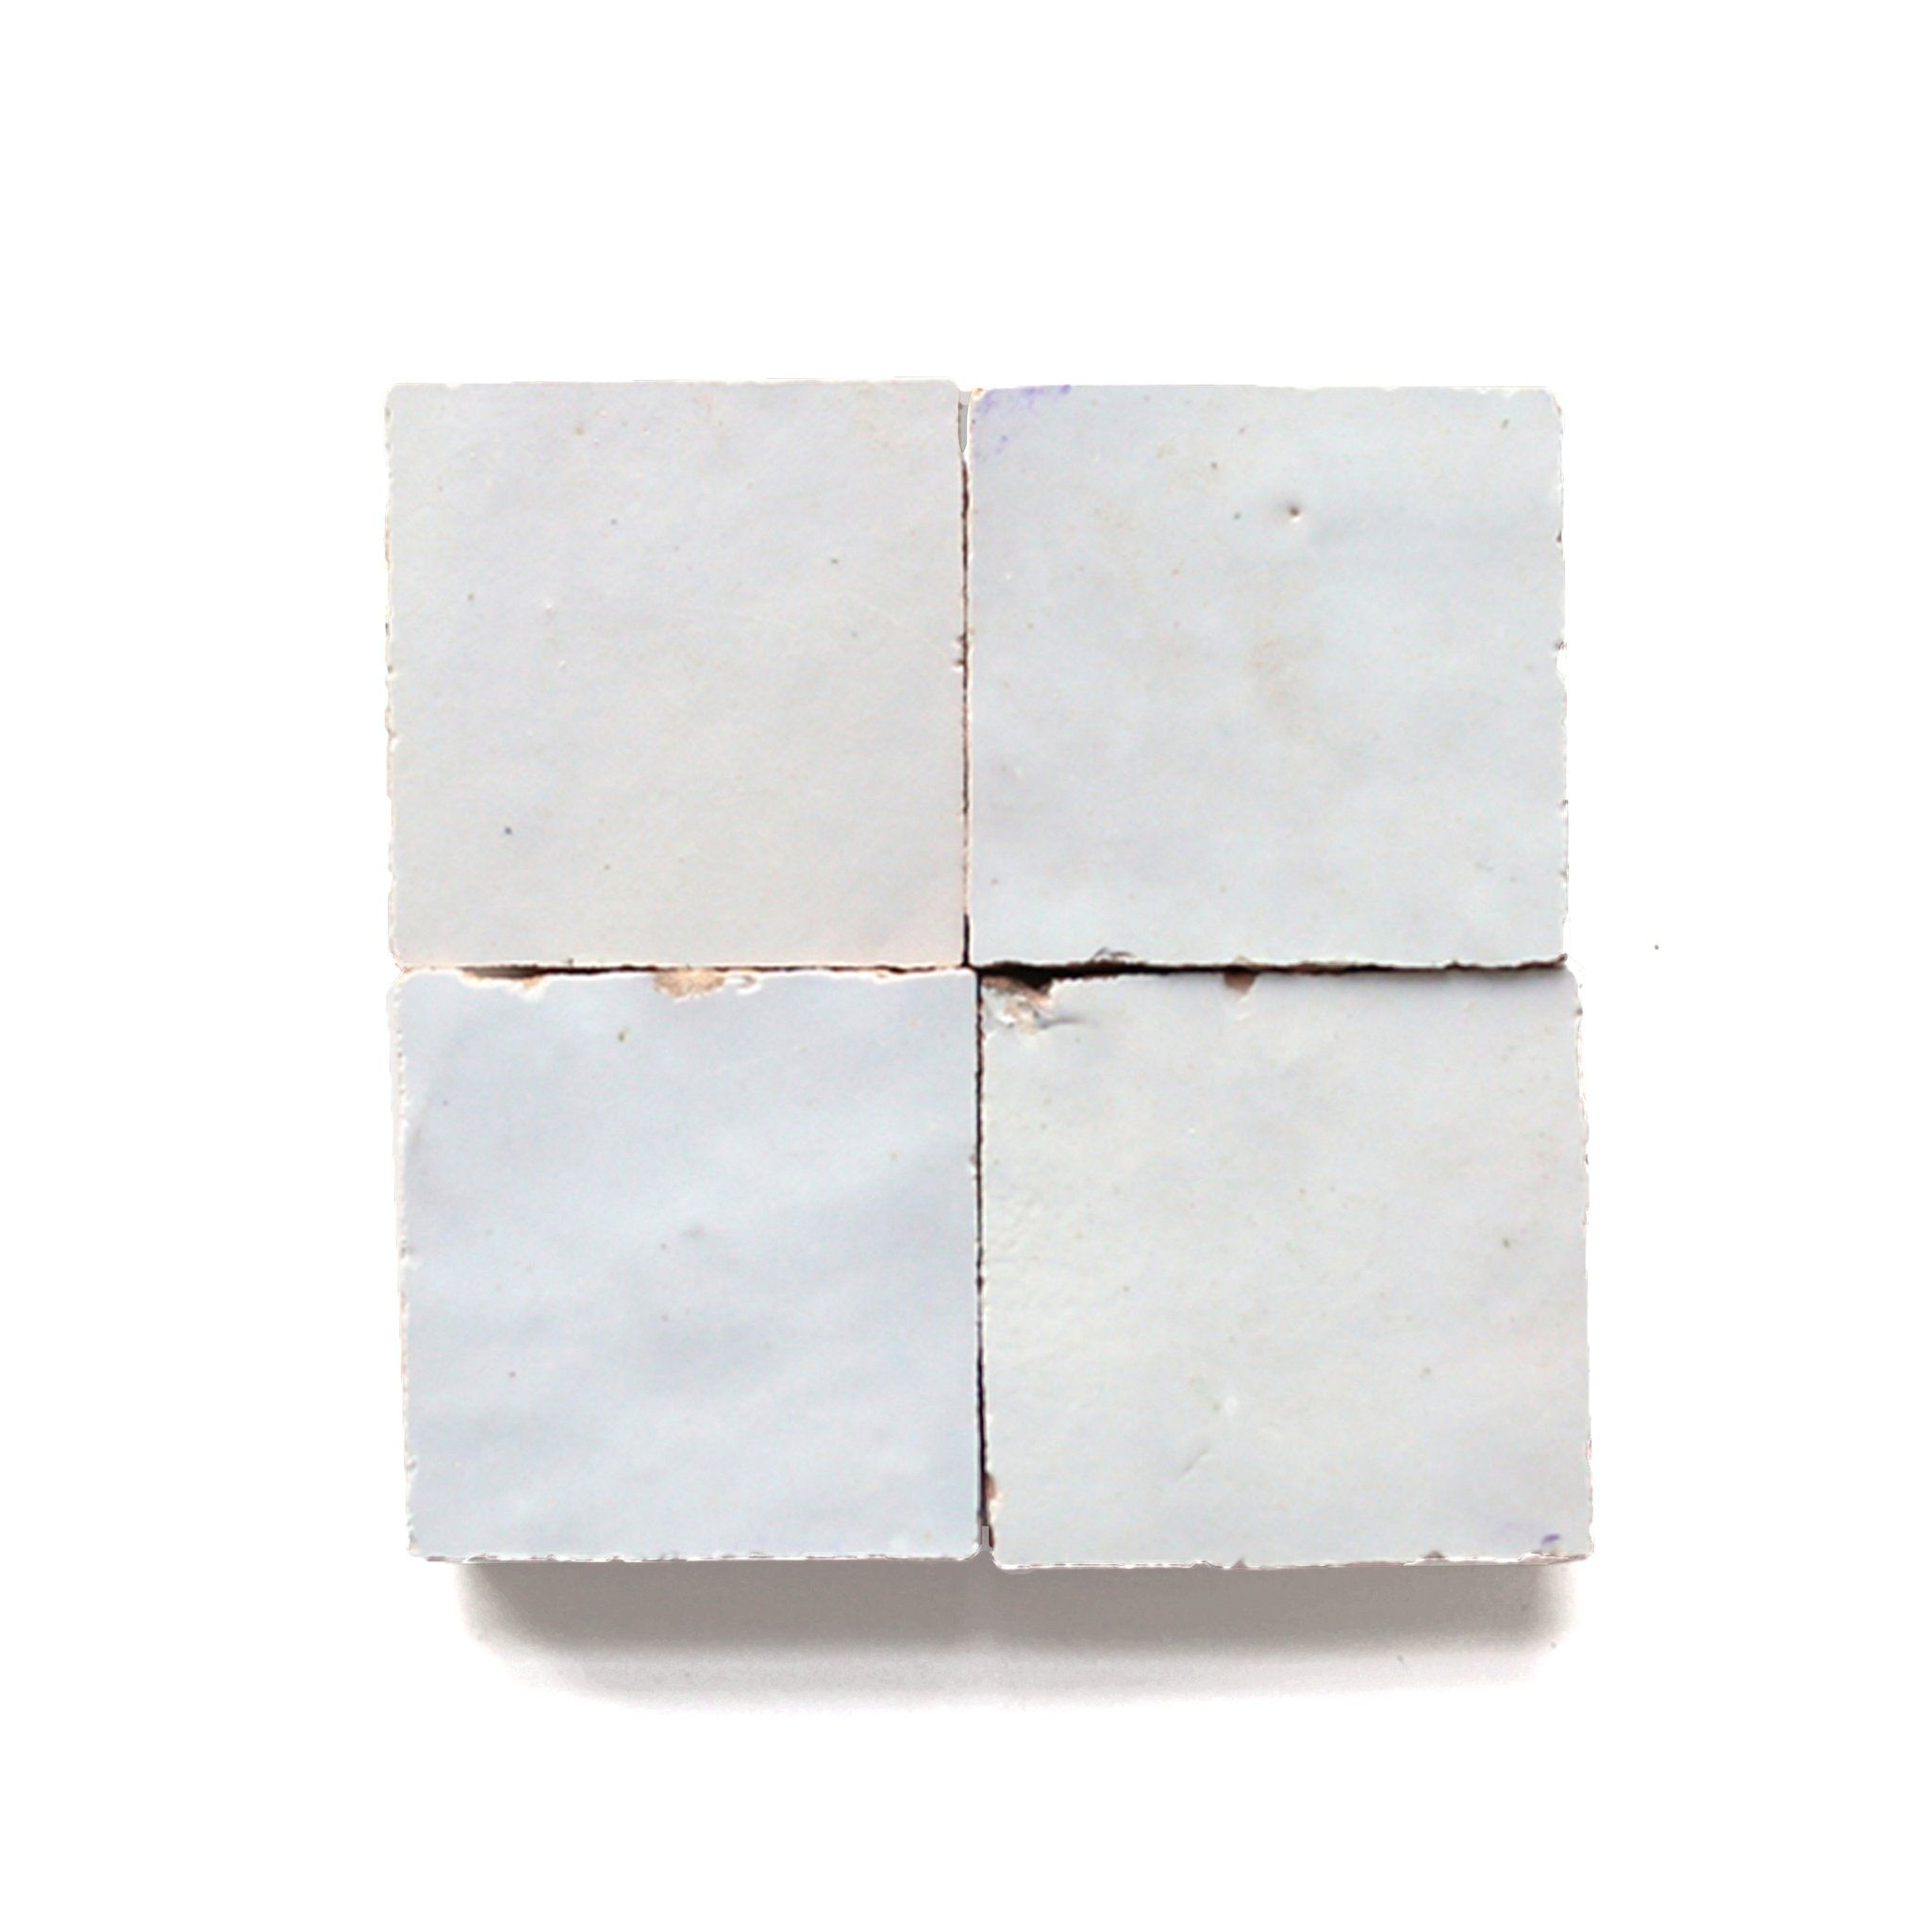 Weathered White 4 X4 X3 8 By Cle Tile Terracotta Tiles Cle Tile Weathered White